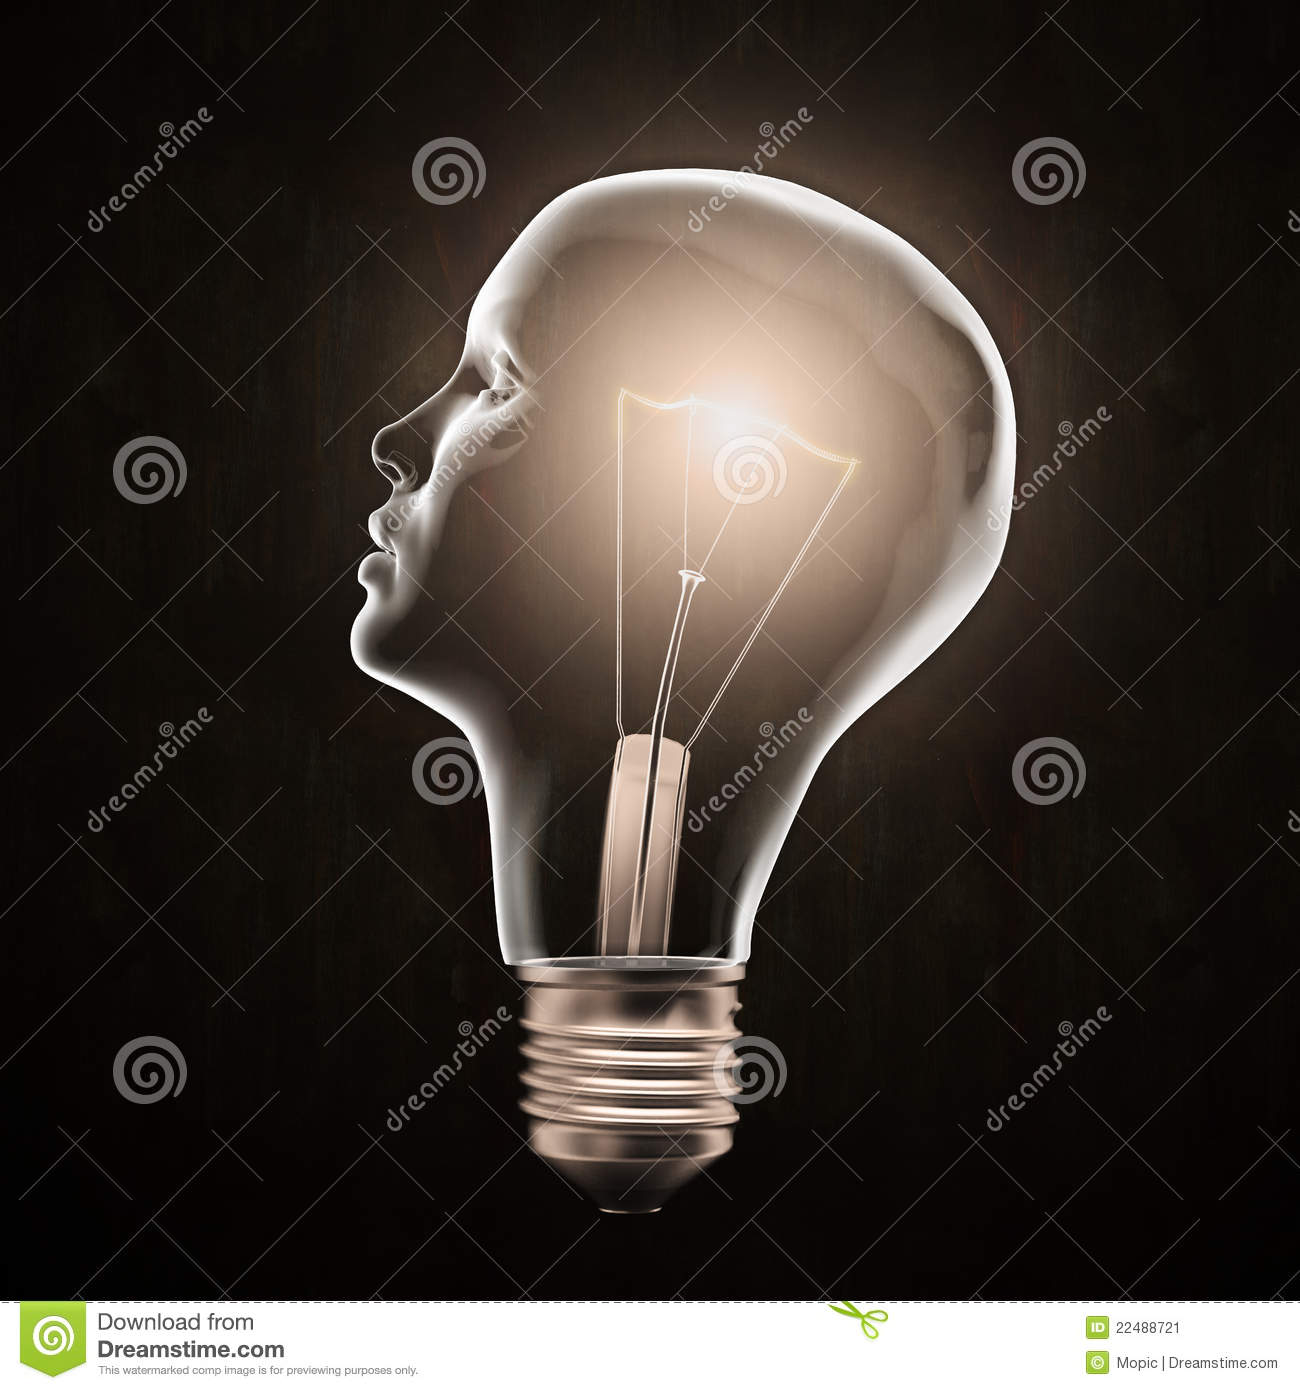 Download Head shaped light bulb stock image. Image of knowledge - 22488721